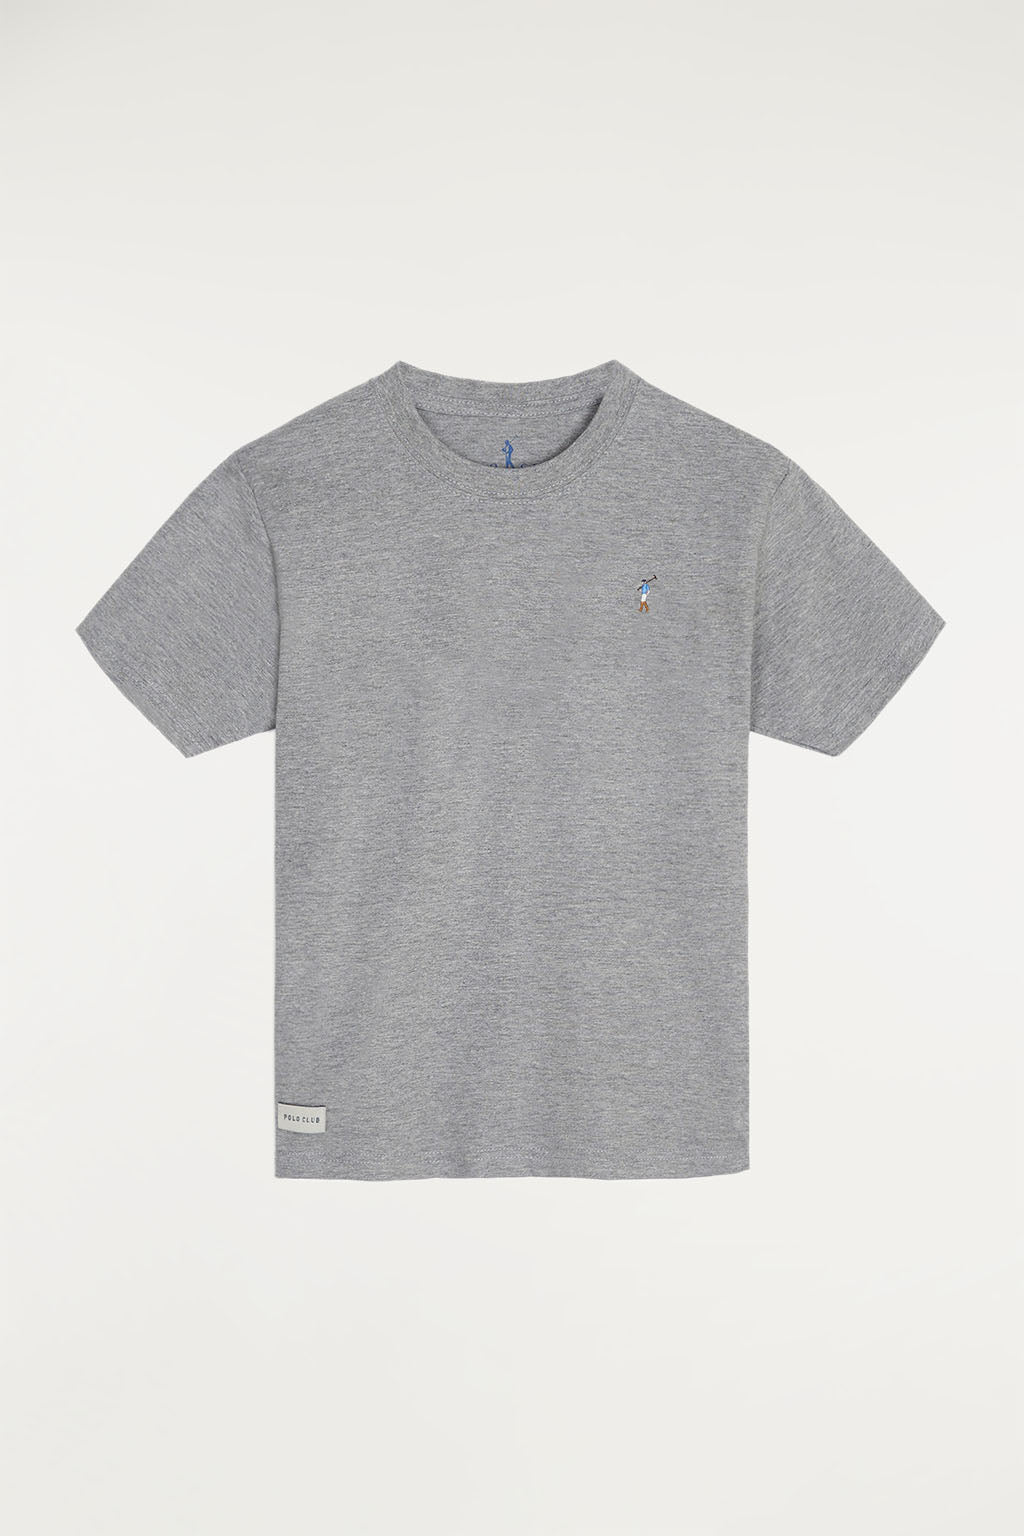 Grey vigore tee with small multicoloured embroidered logo